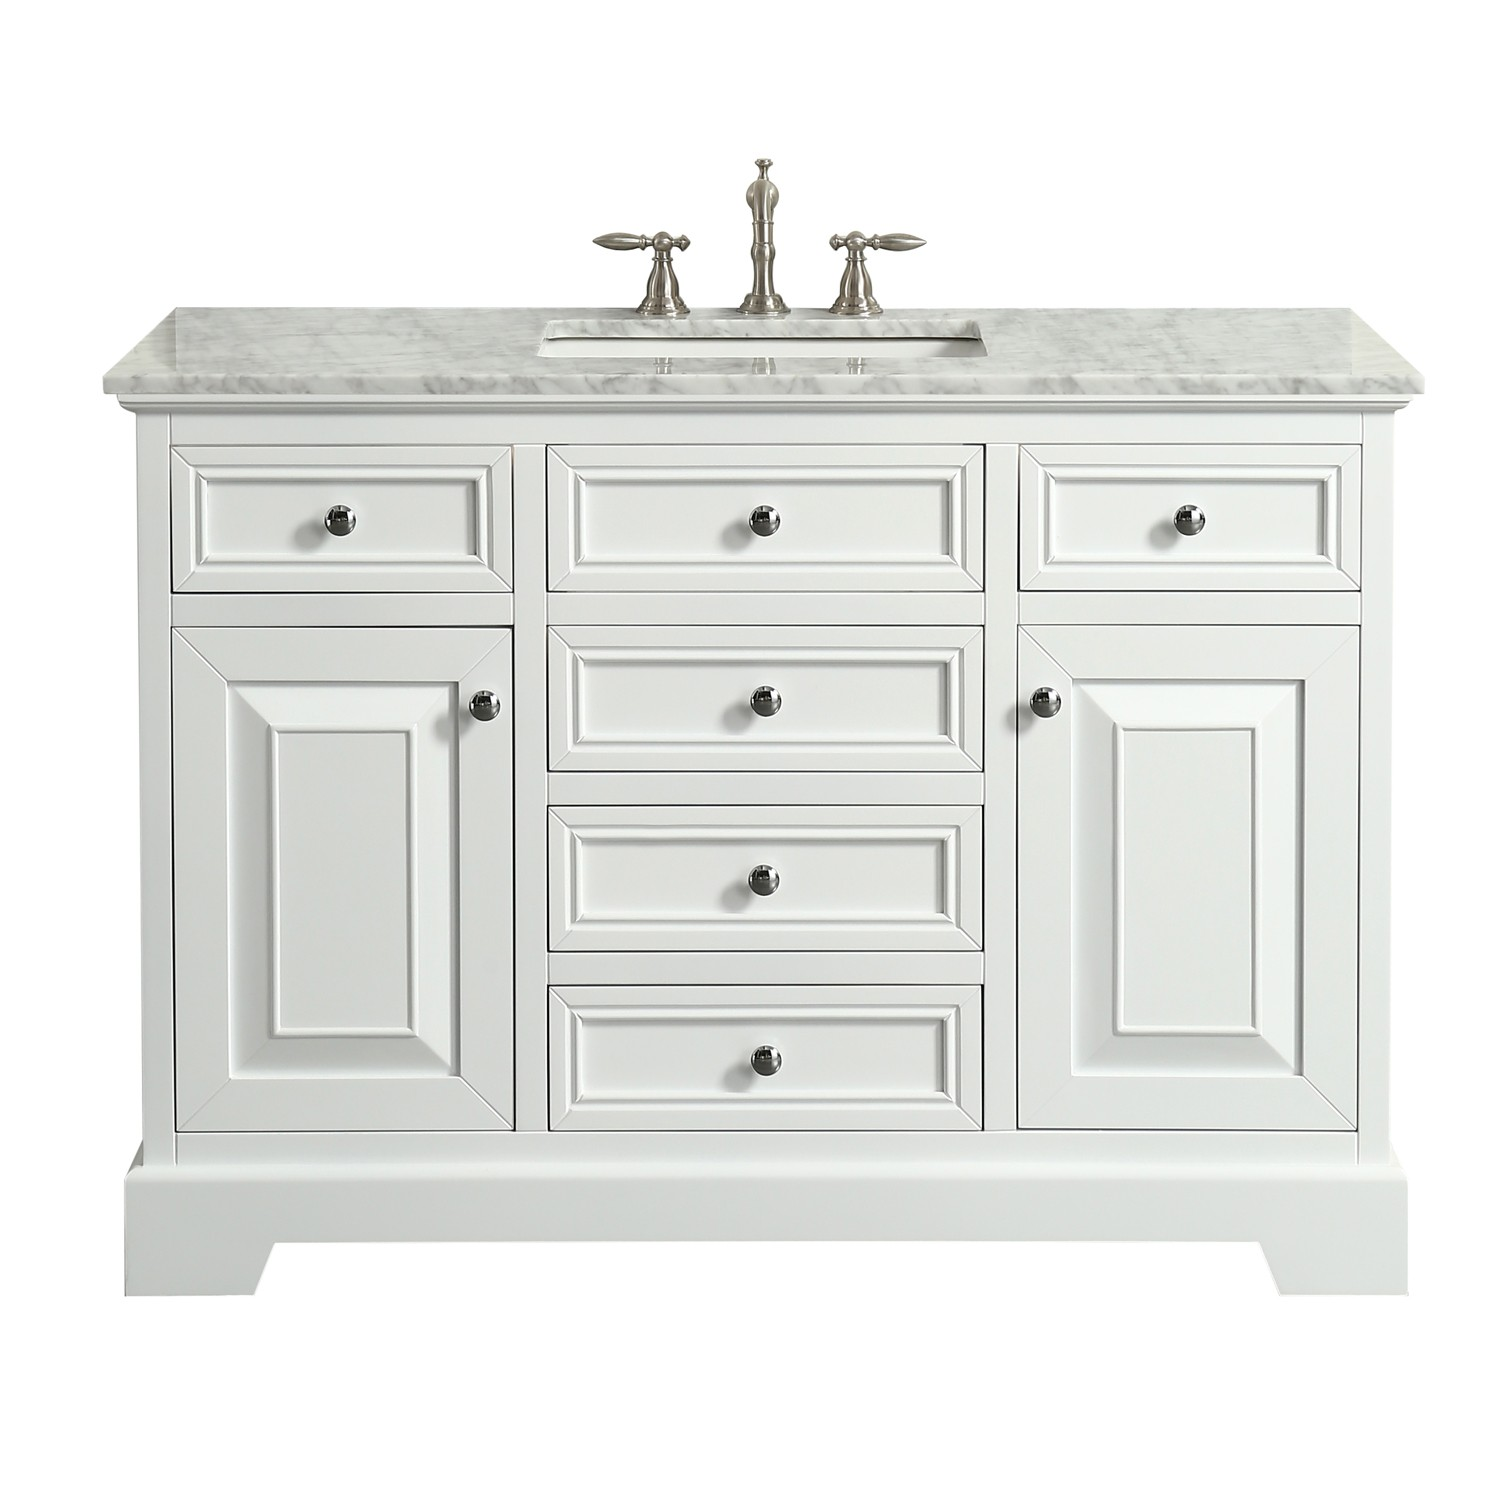 Eviva Monroe 42 in. White Bathroom Vanity with White Carrara Marble Top &  White Undermount Porcelain Sink